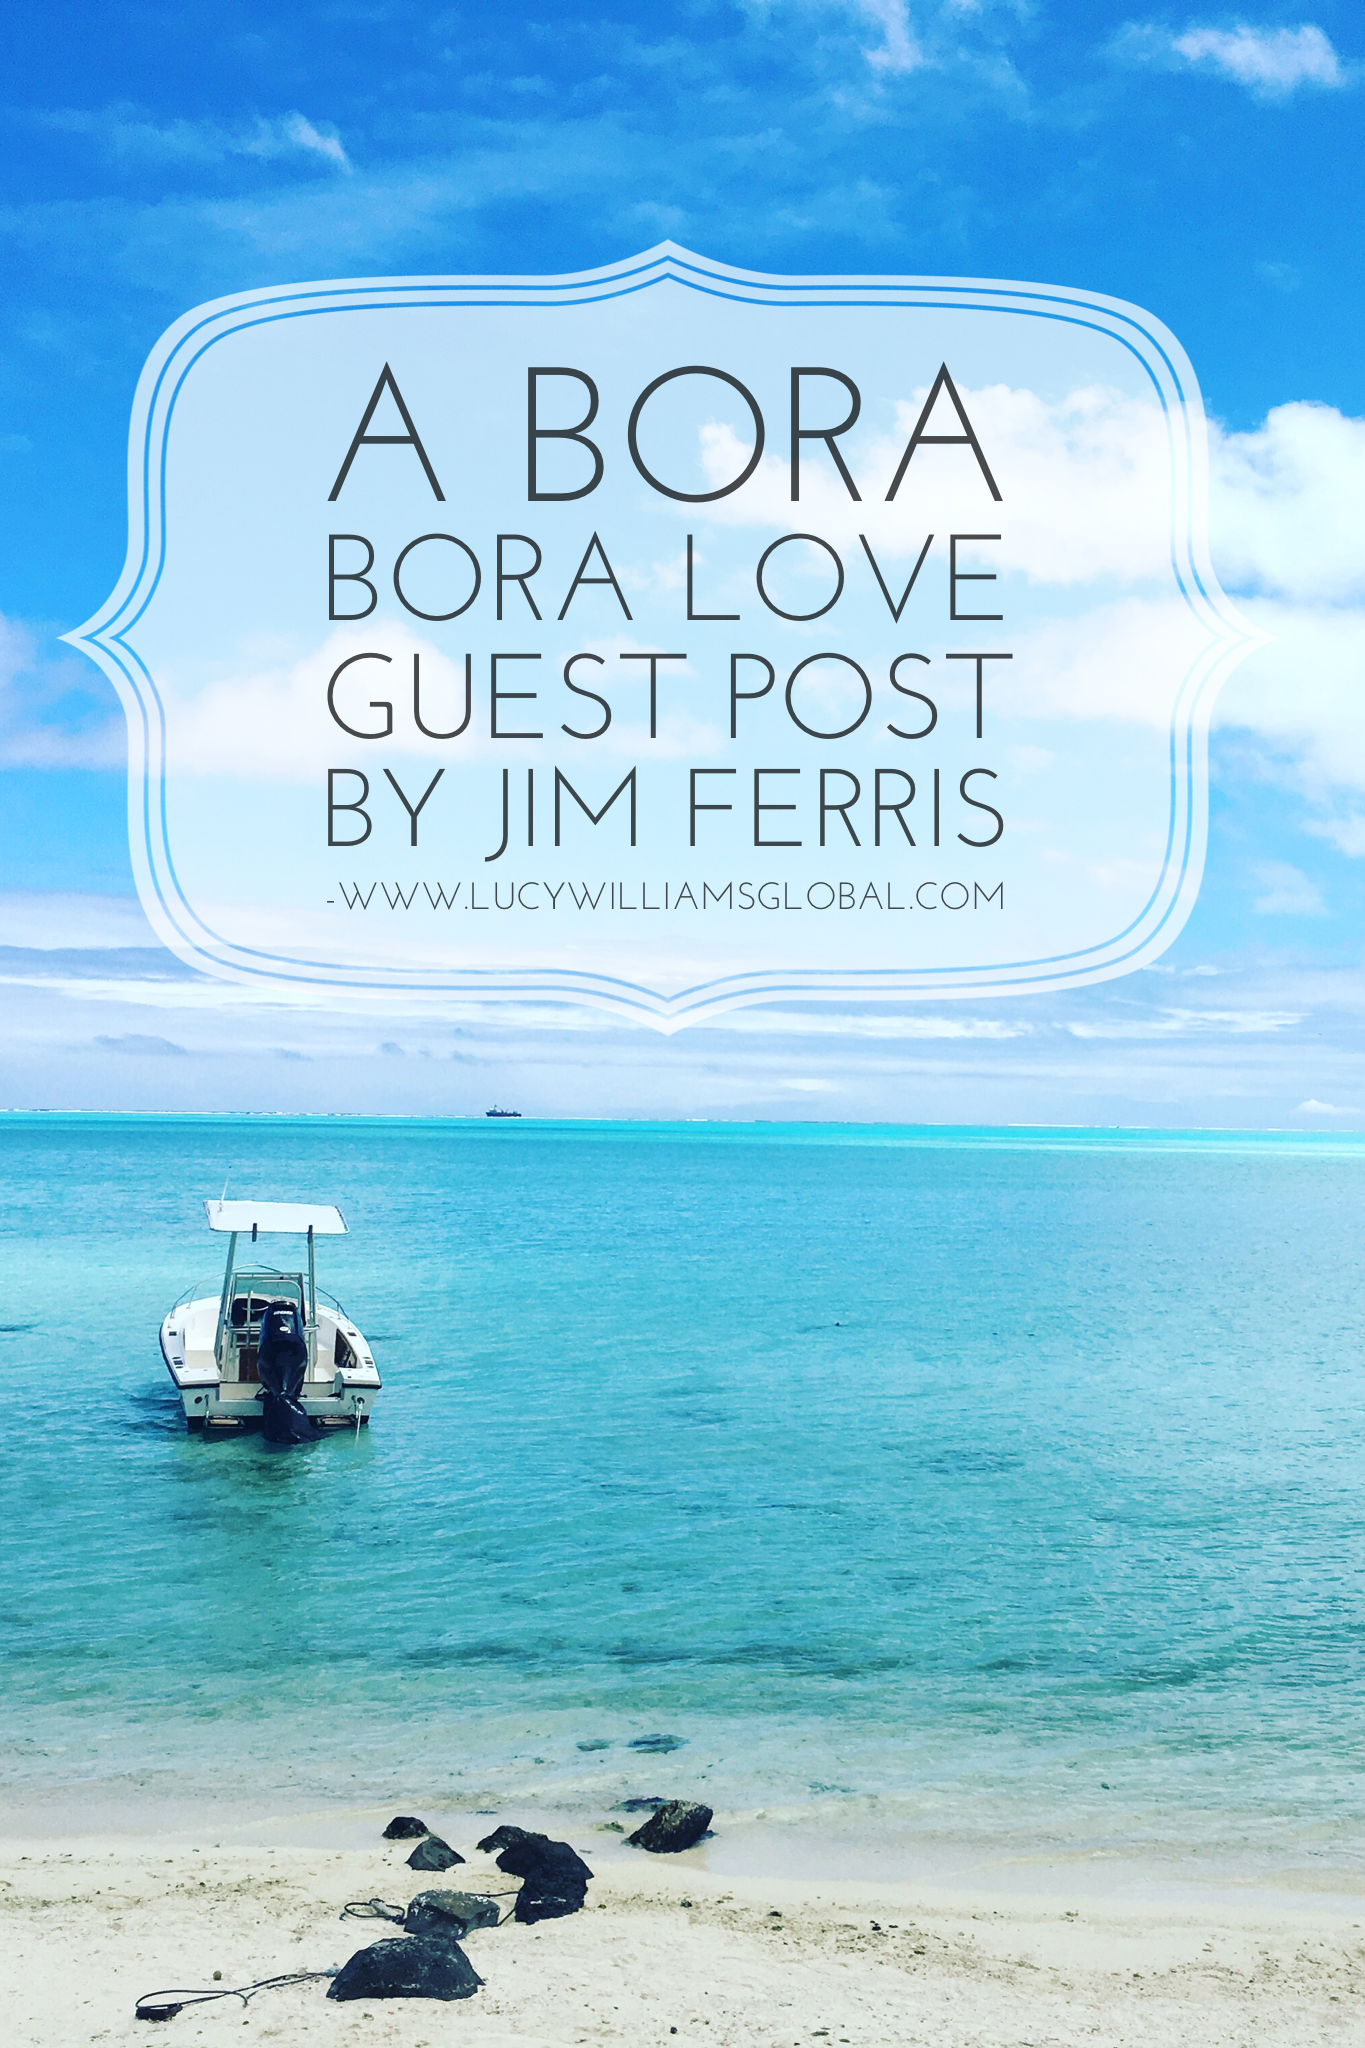 A Bora Bora Love by Jim ferris